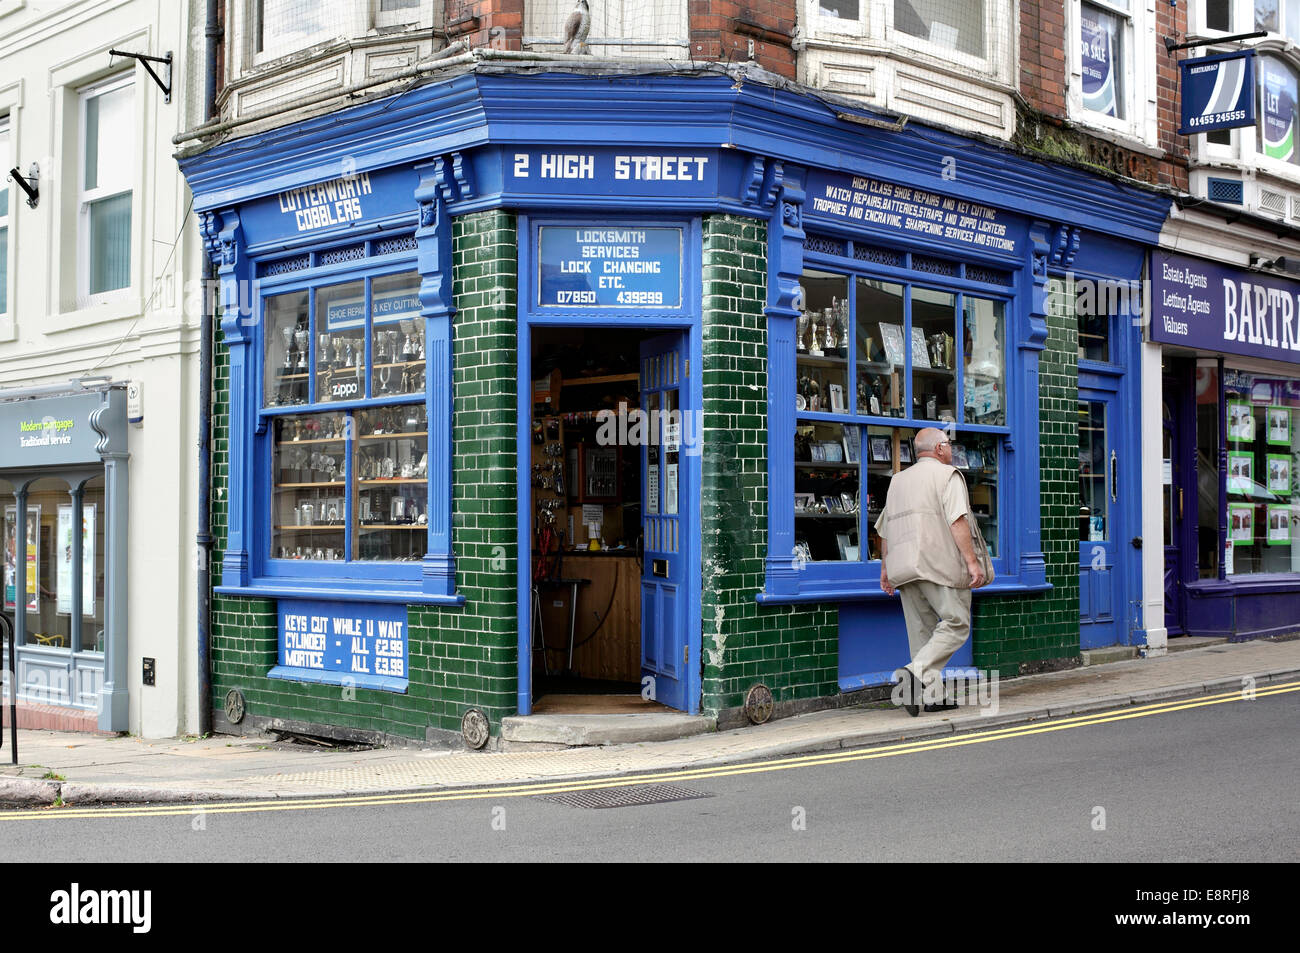 Traditional locksmith and cobblers shop, High Street, Lutterworth, Leicestershire. Stock Photo